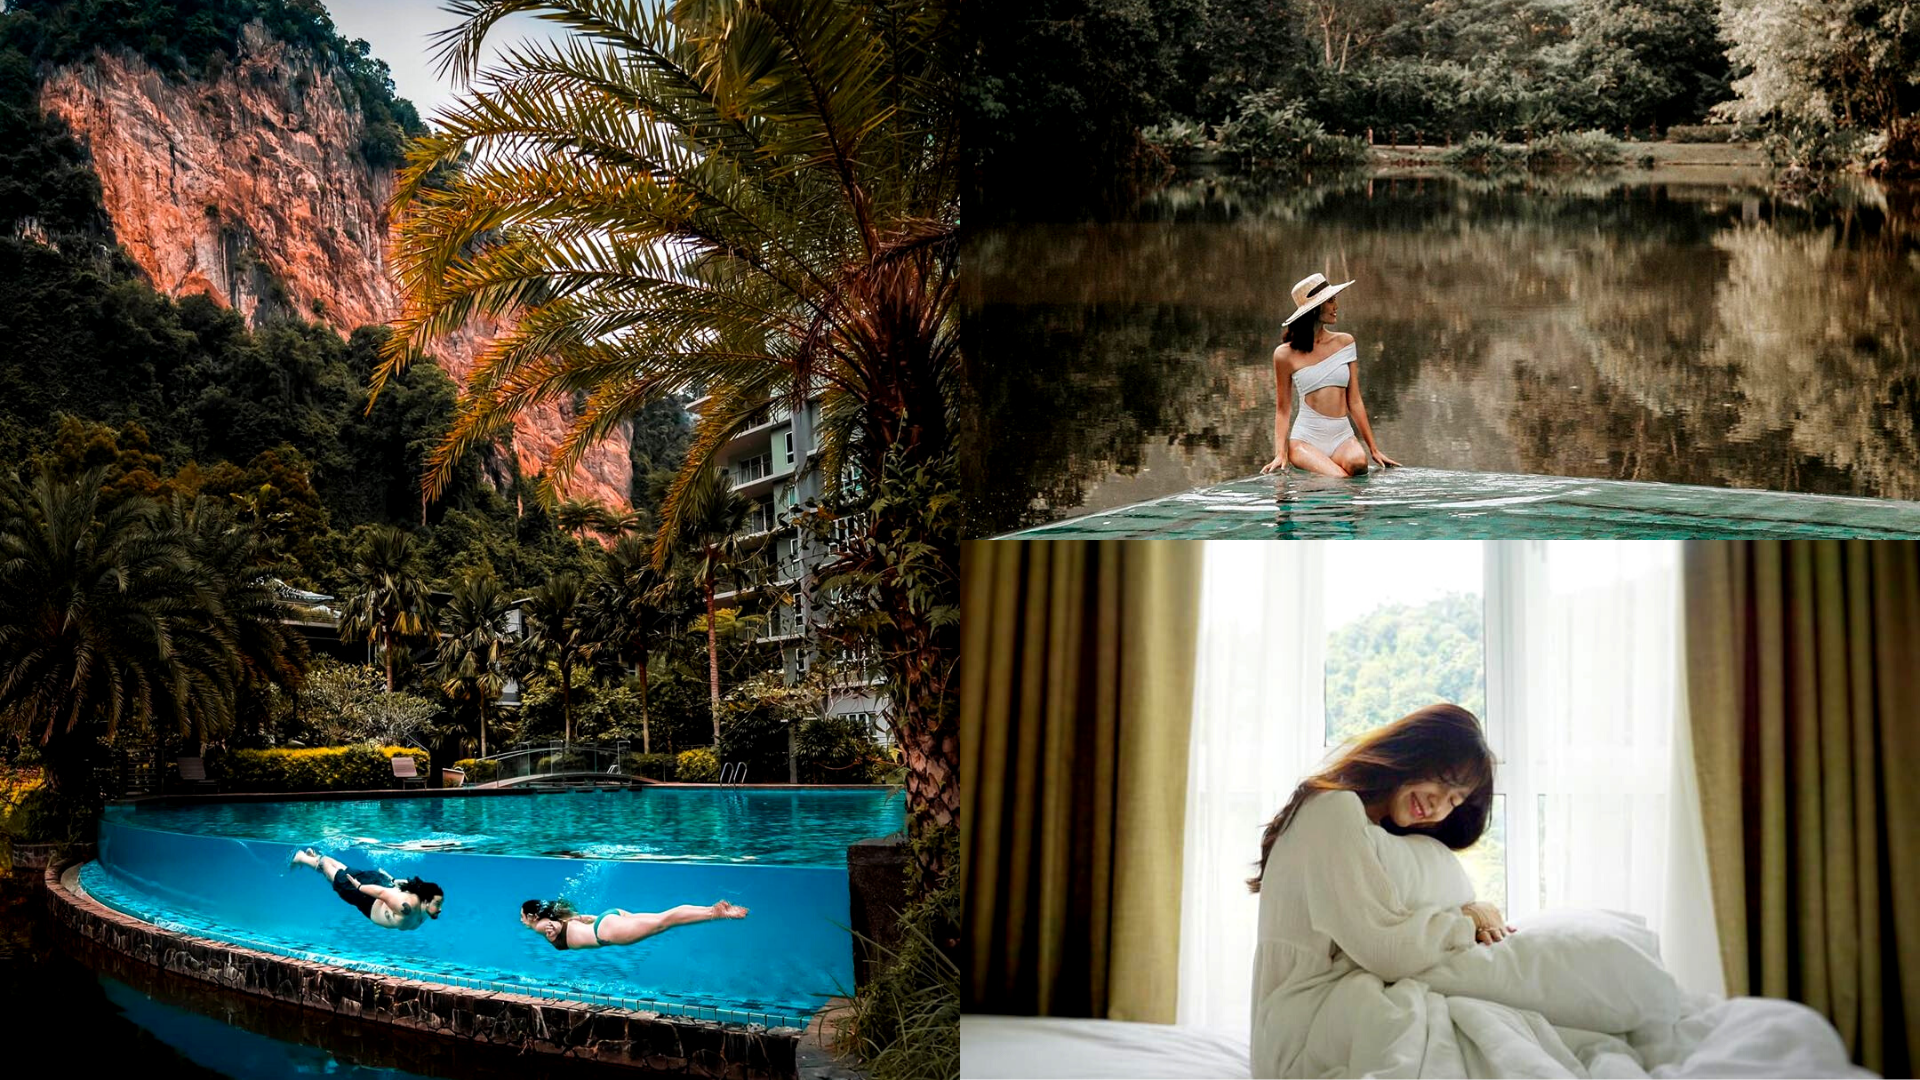 The Haven Resort, Ipoh: Swim In An Infinity Pool Framed By Limestone Cliffs And Wake Up To Crisp Mountain Air